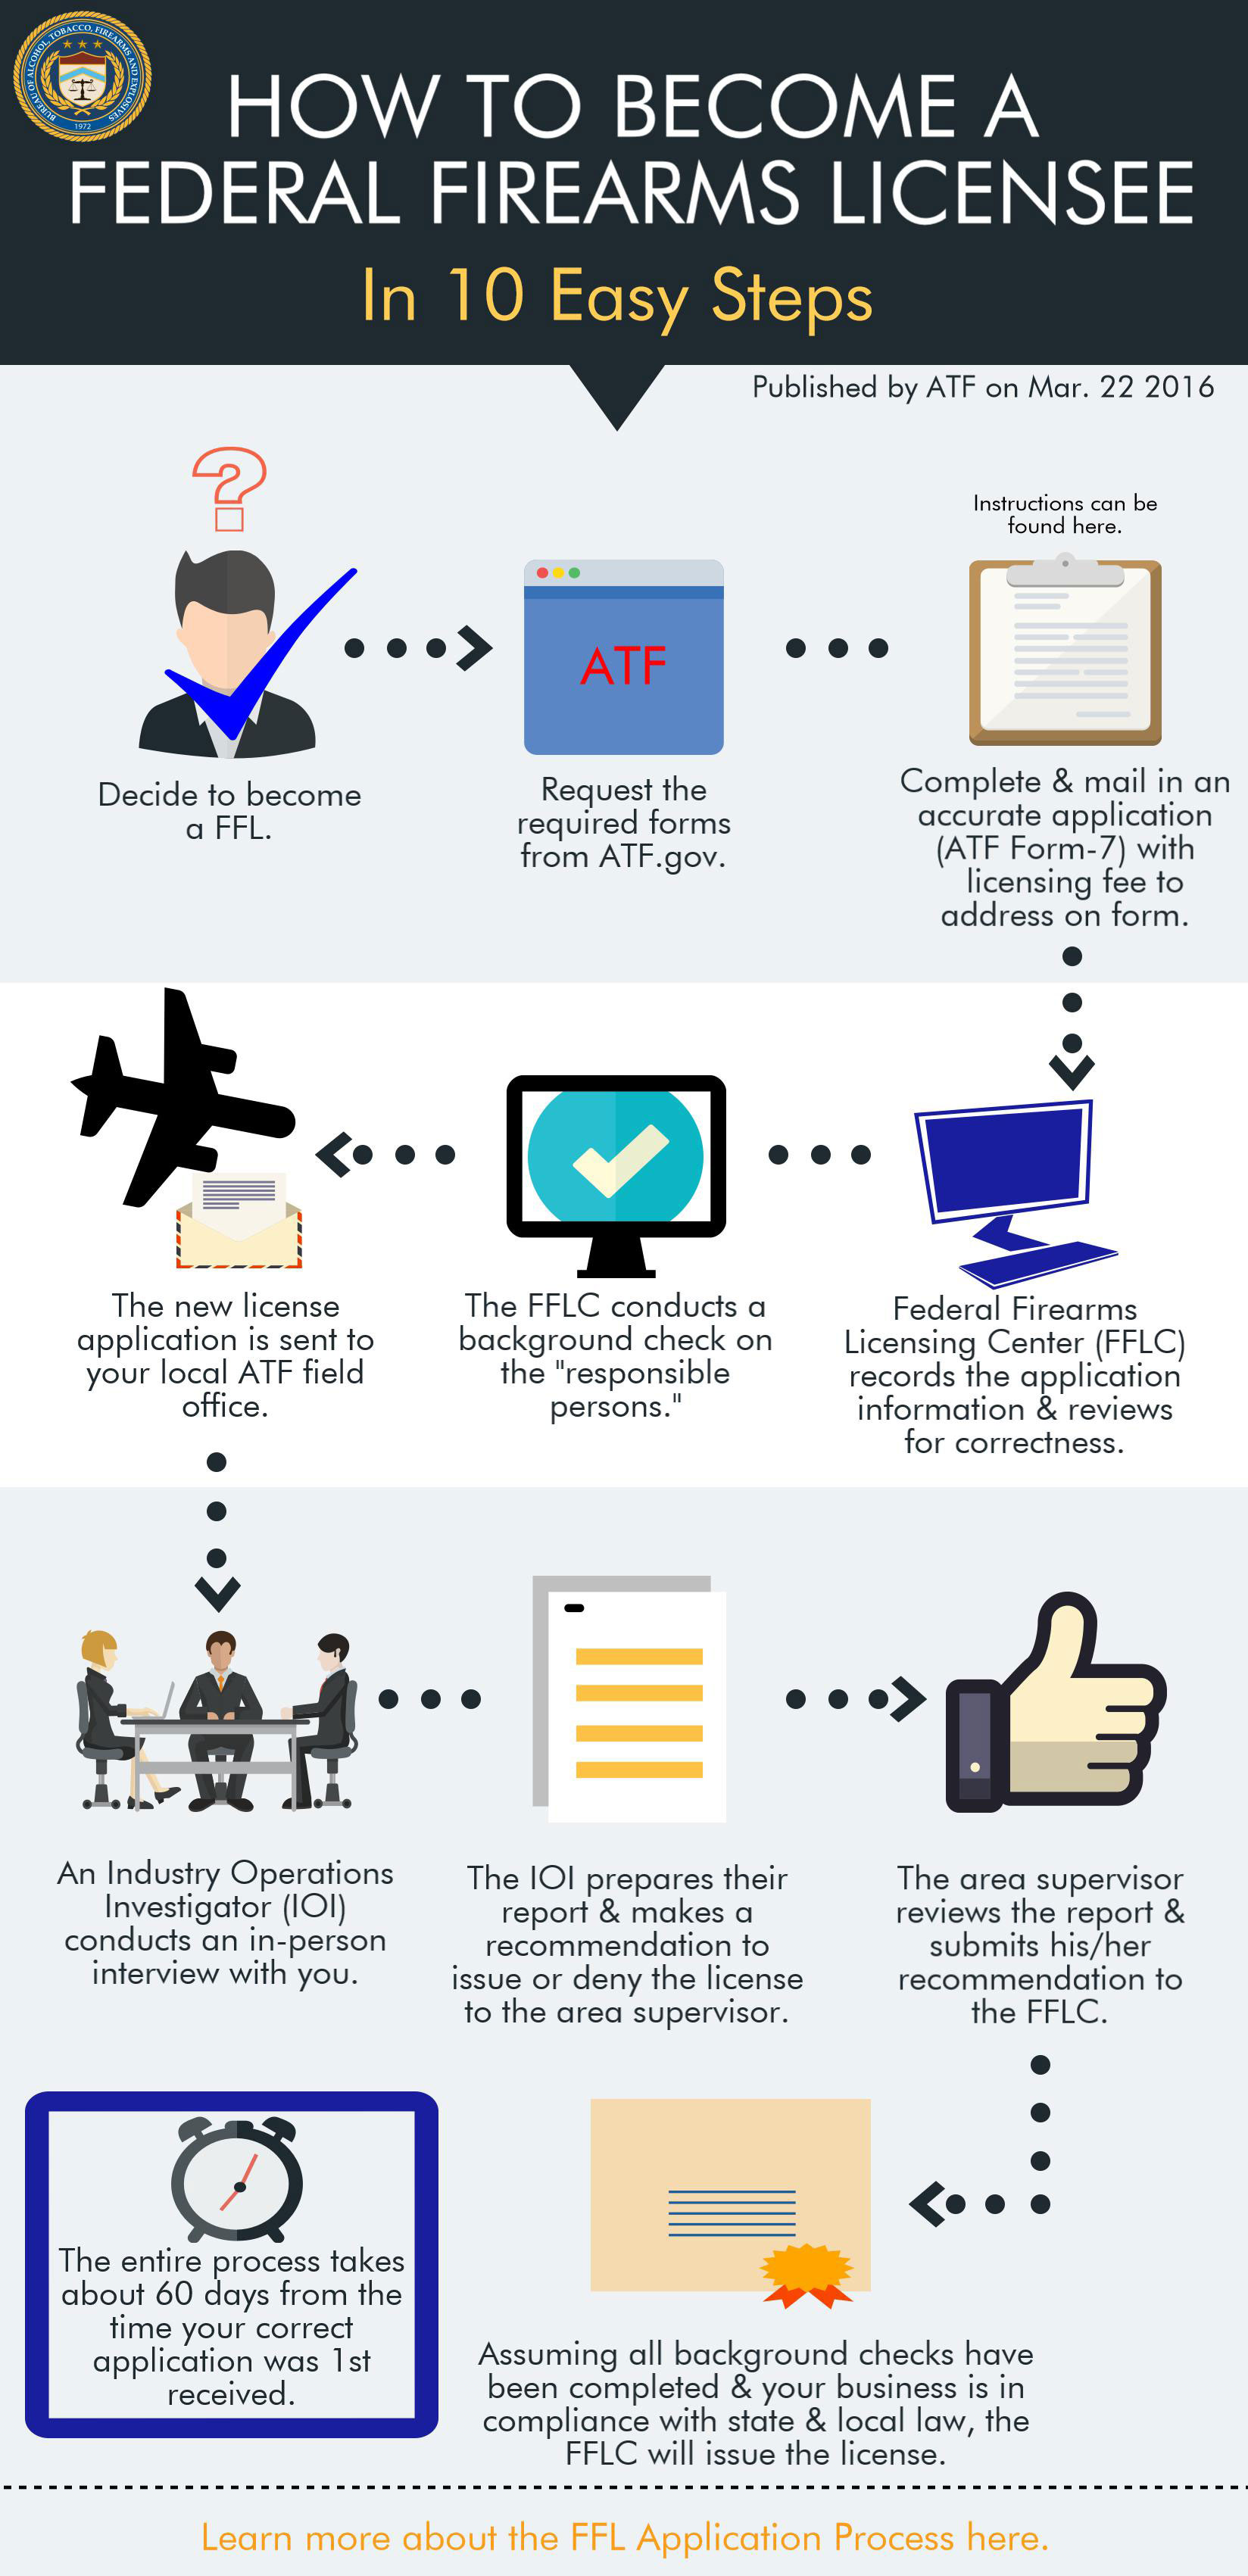 ATF's ten step ffl process